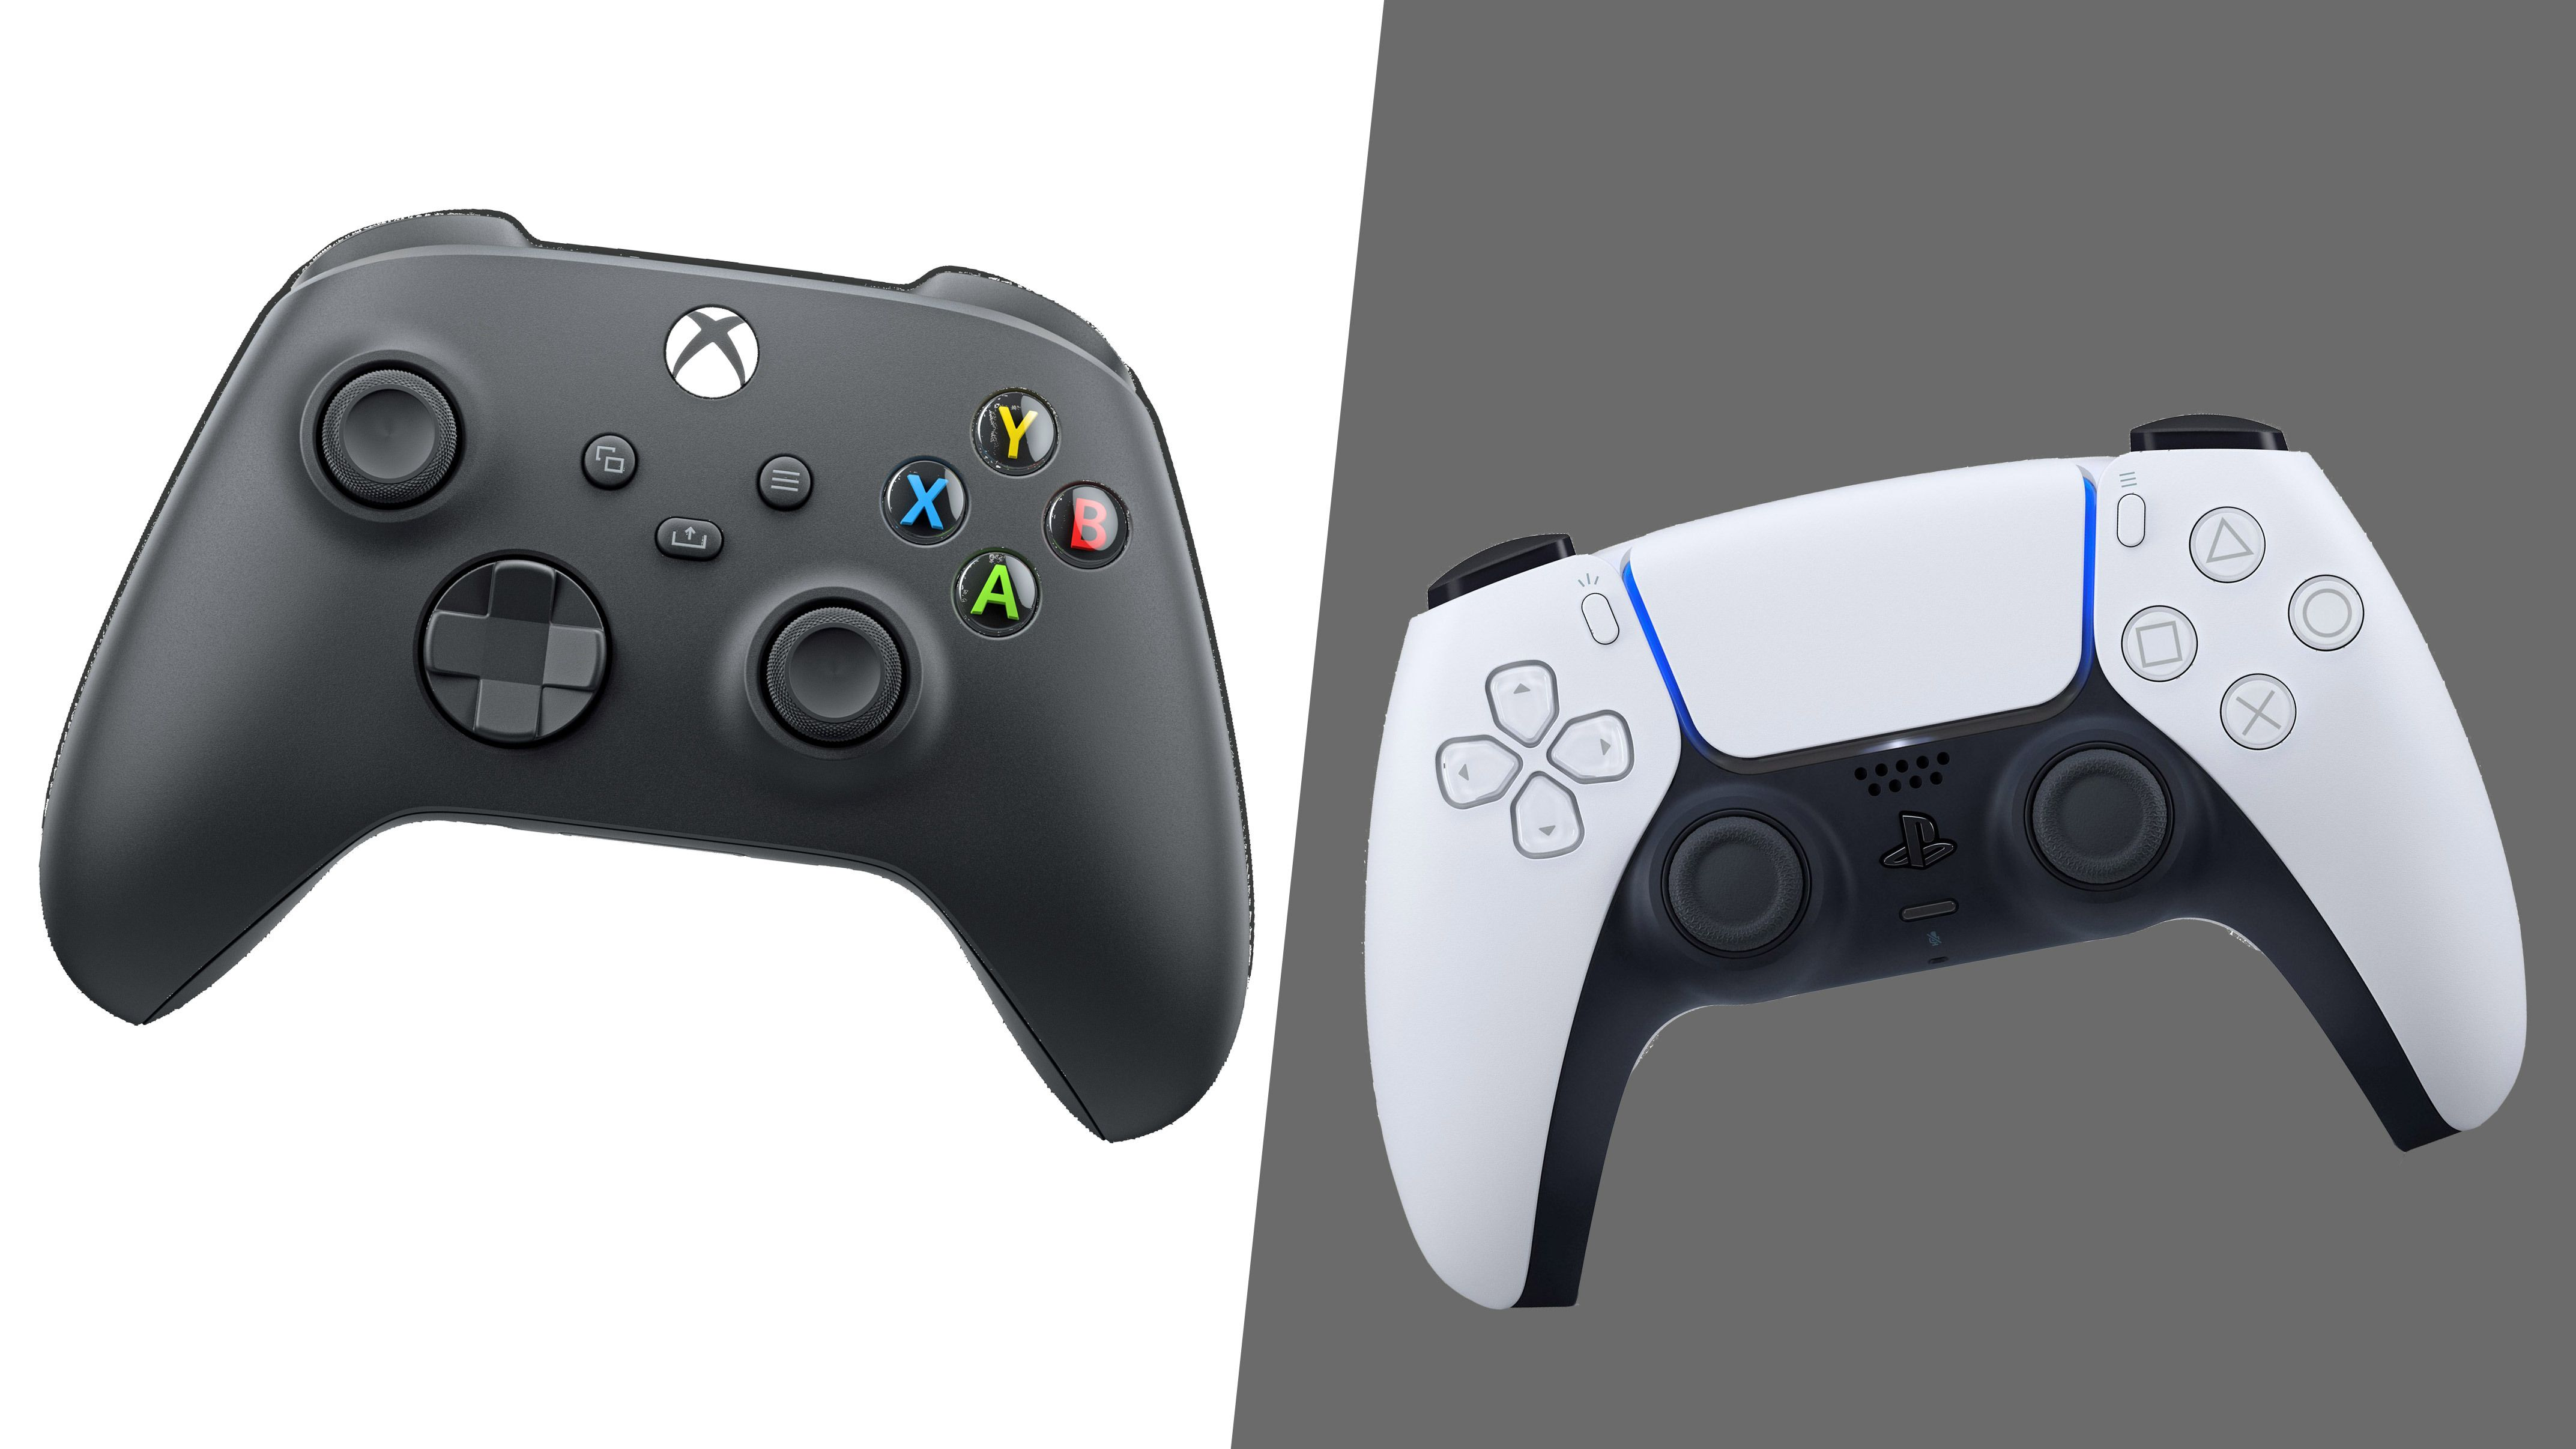 Ps5 Dualsense Controller Vs Xbox Series X Controller Which Gamepad Is Better Playstation Controller Xbox Playstation